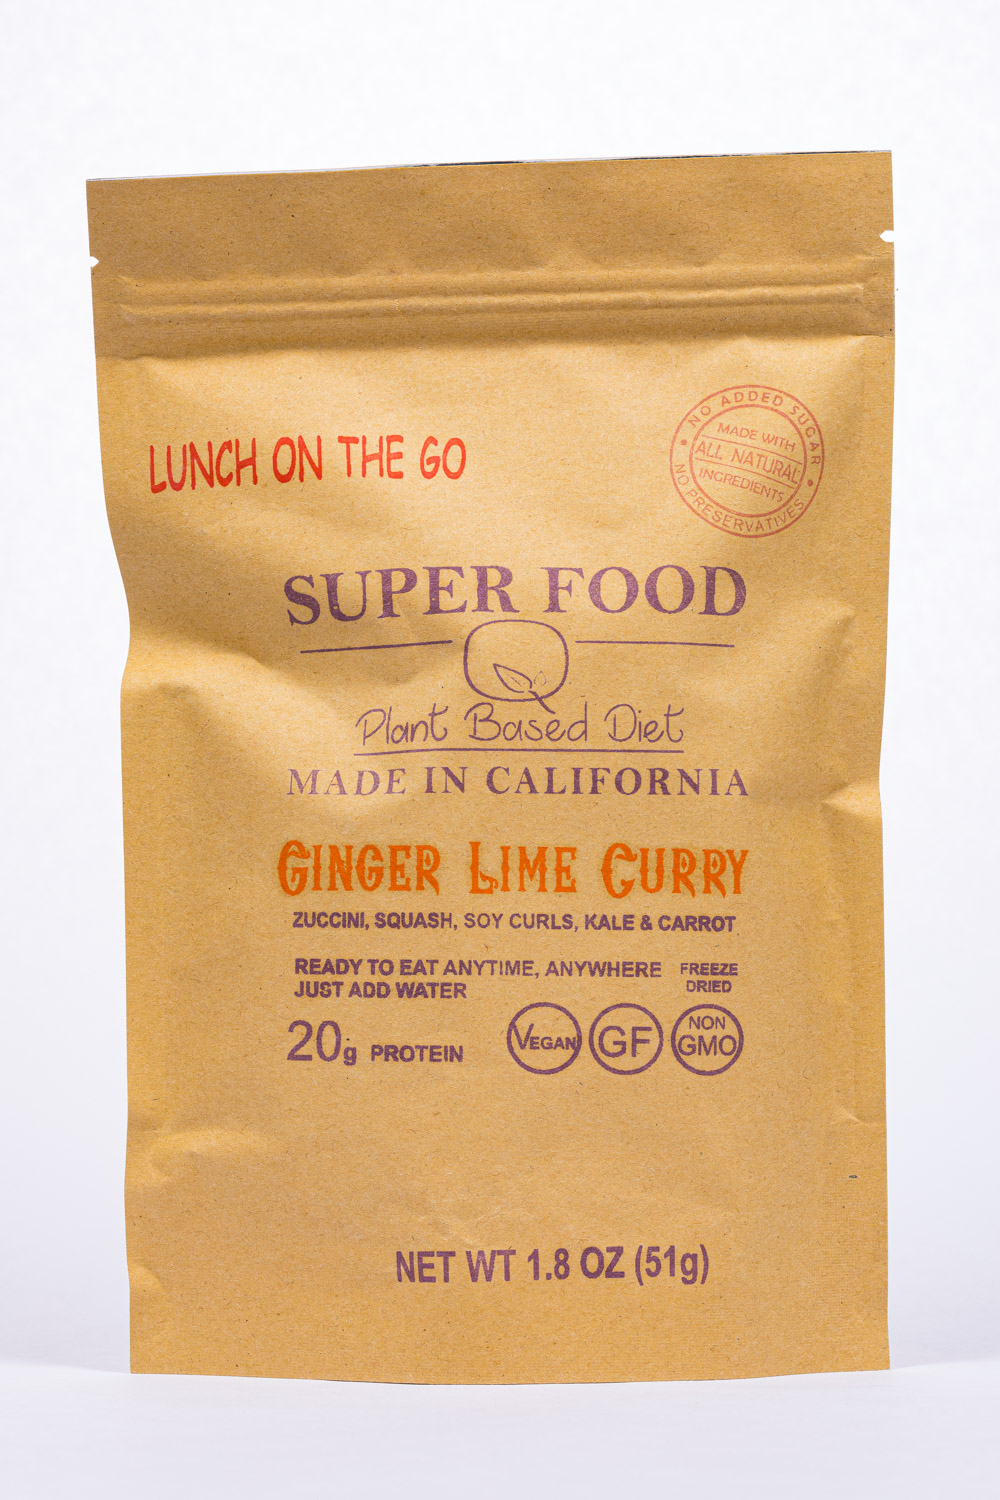 Ginger Lime Curry